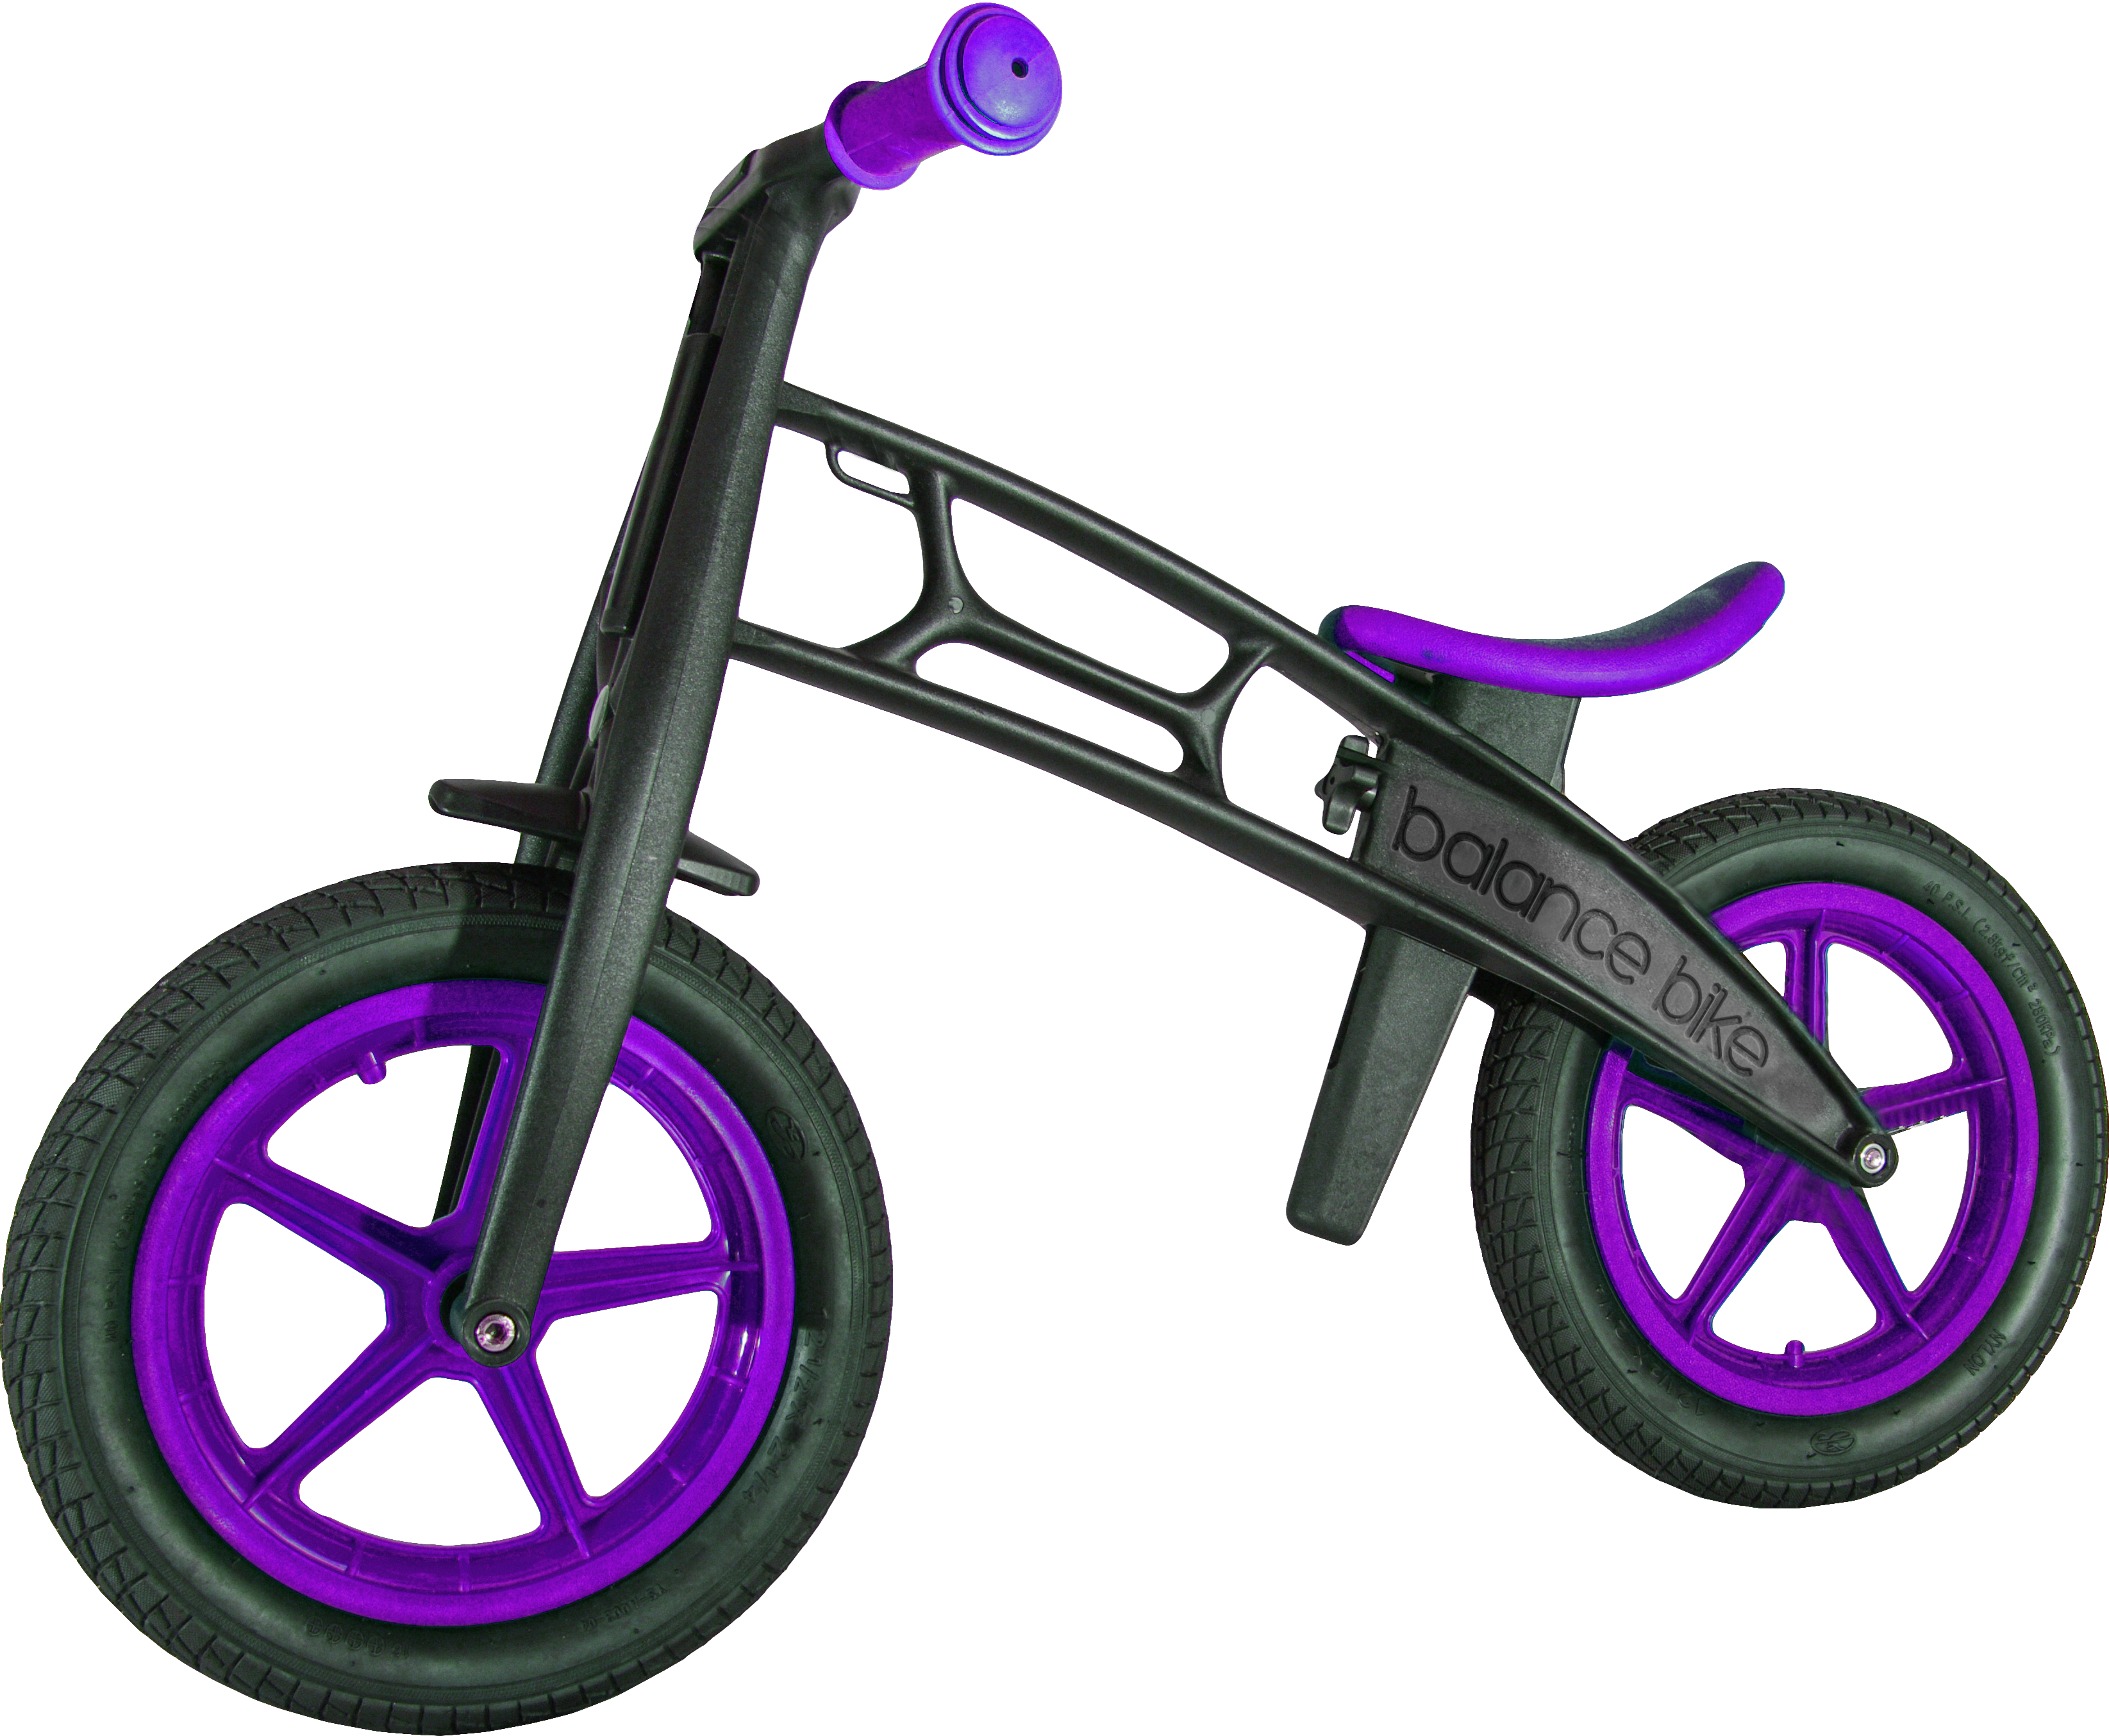 Balance zompers available . Clipart bike purple bike